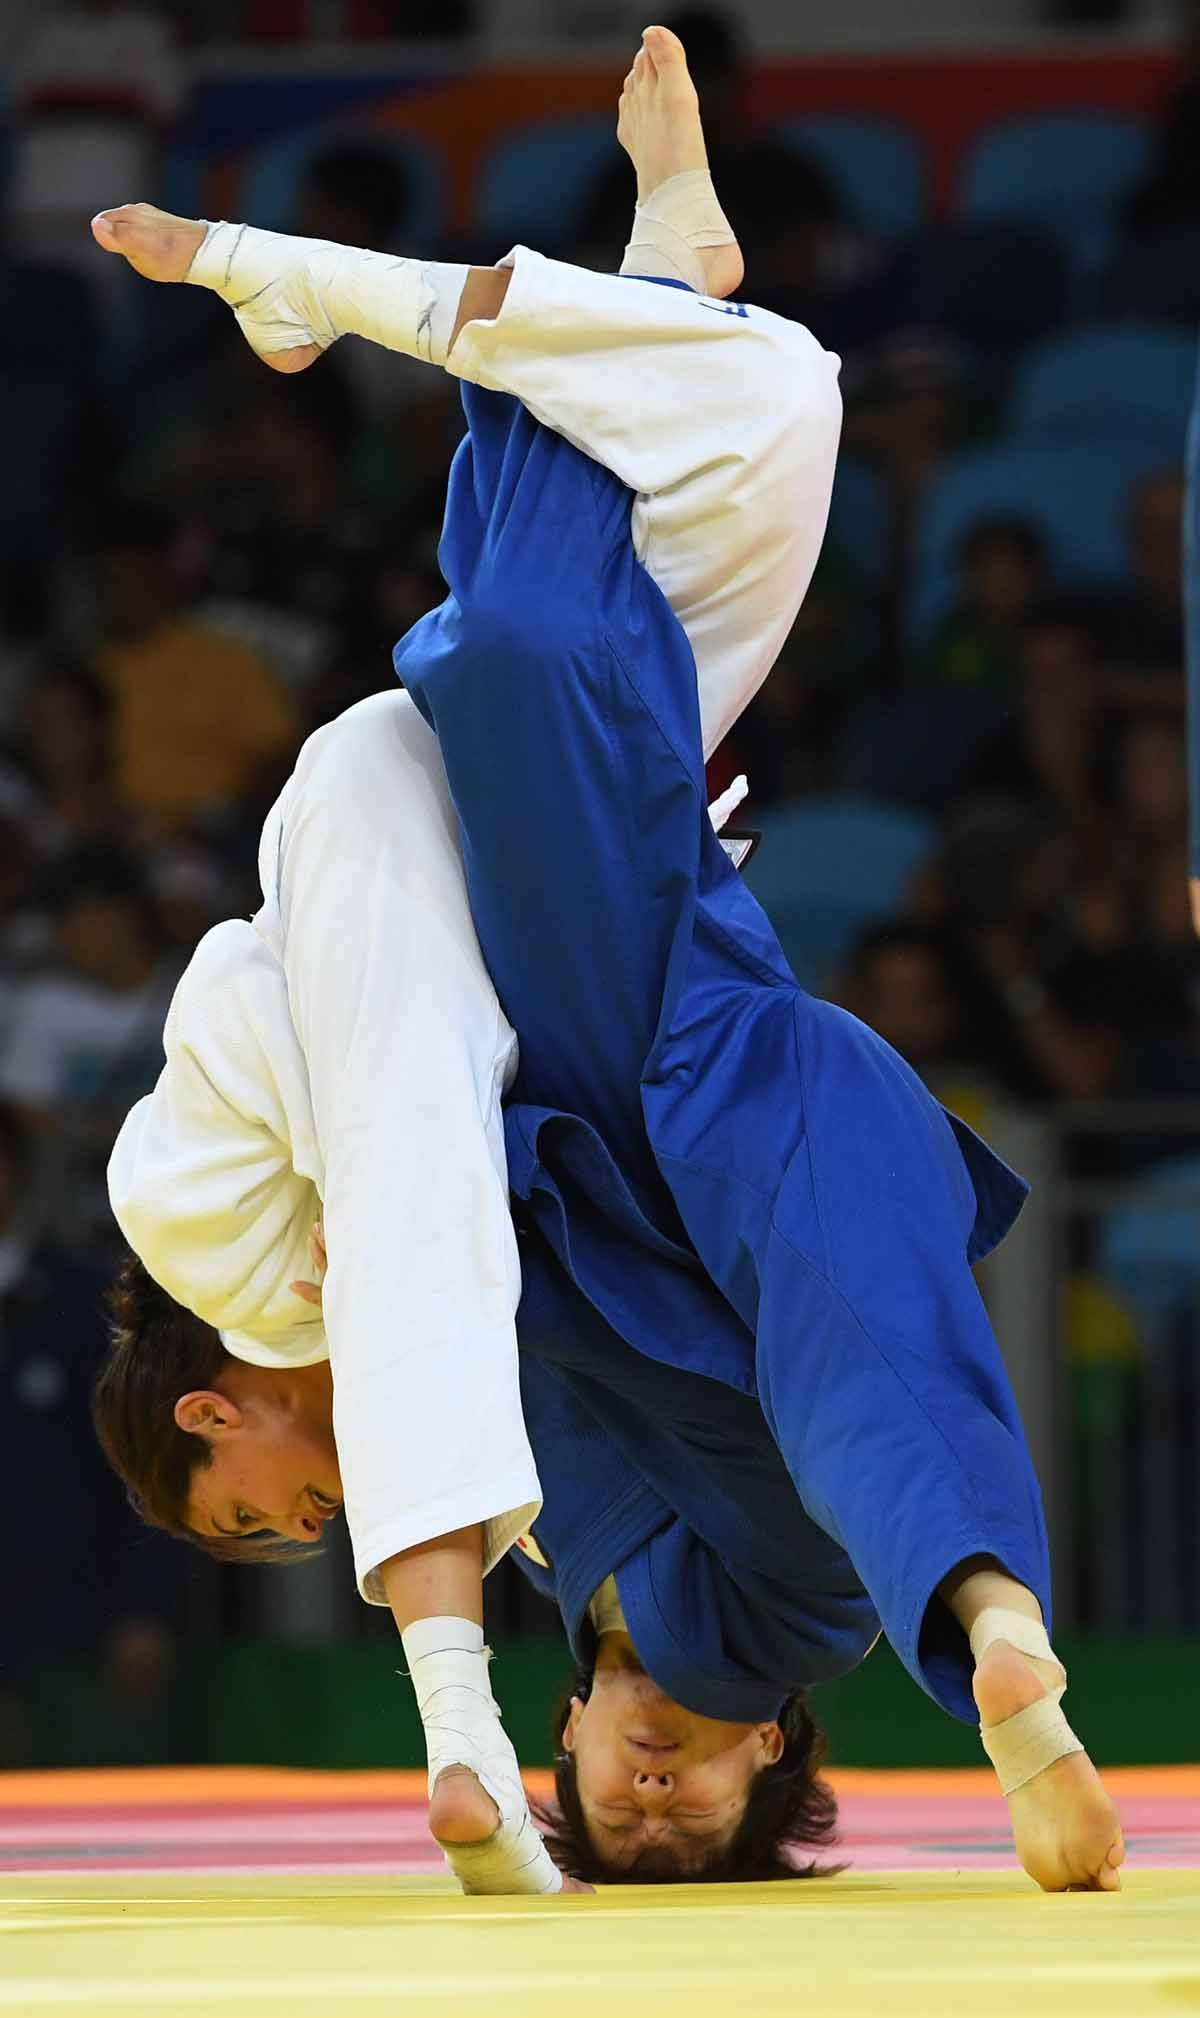 Israel's Yarden Gerbi (white) competes with Japan's Miku Tashiro during their women's -63kg judo contest bronze medal A match of the Rio 2016 Olympic Games in Rio de Janeiro on August 9, 2016.